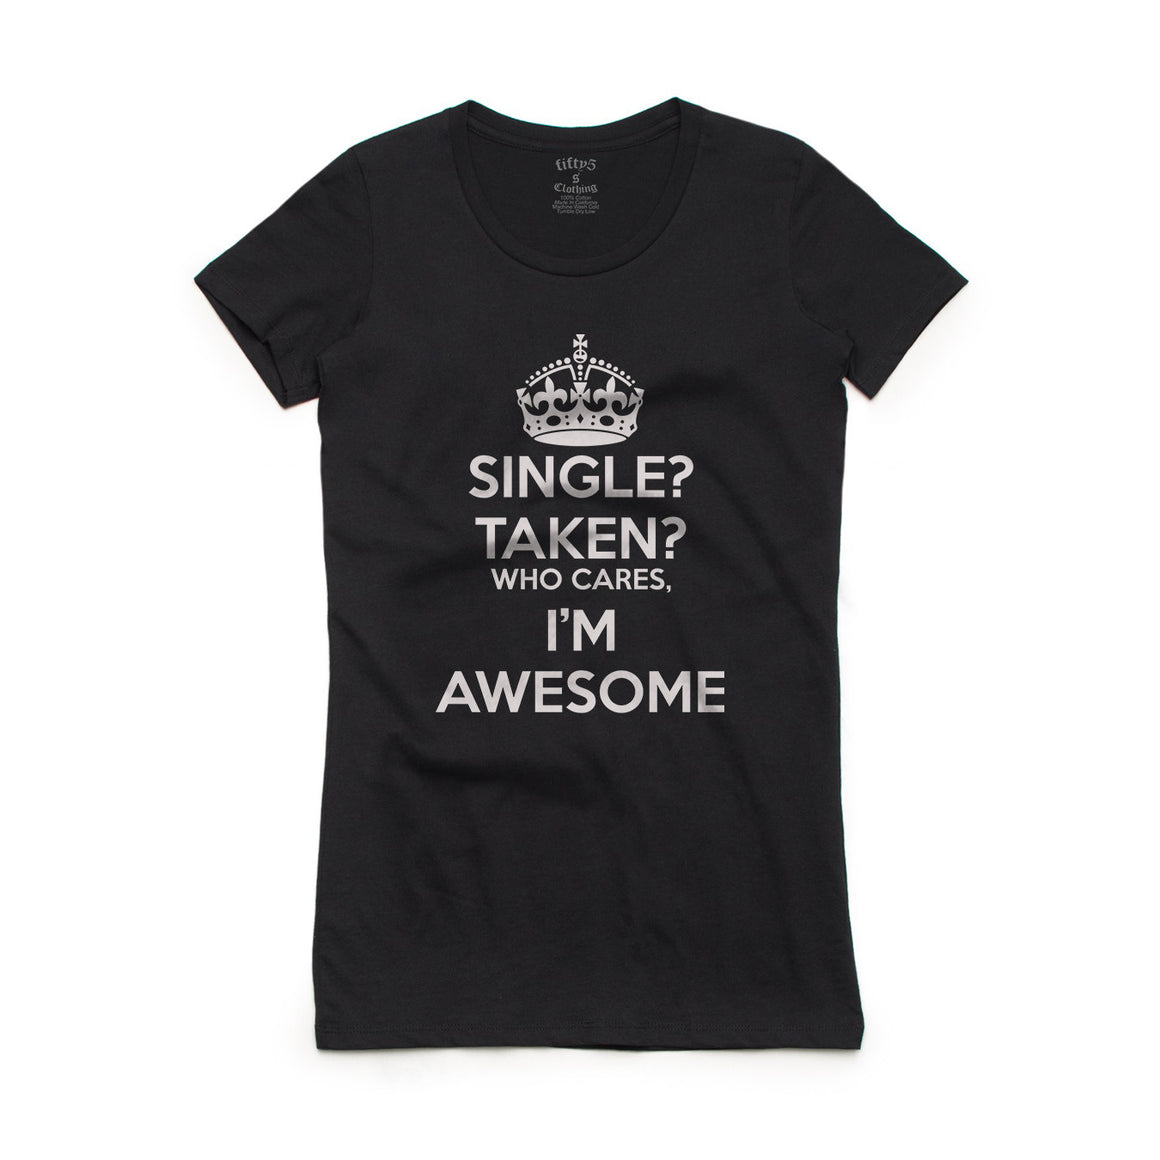 Fifty5 Clothing I'm Awesome Women's Crew Neck T-Shirt